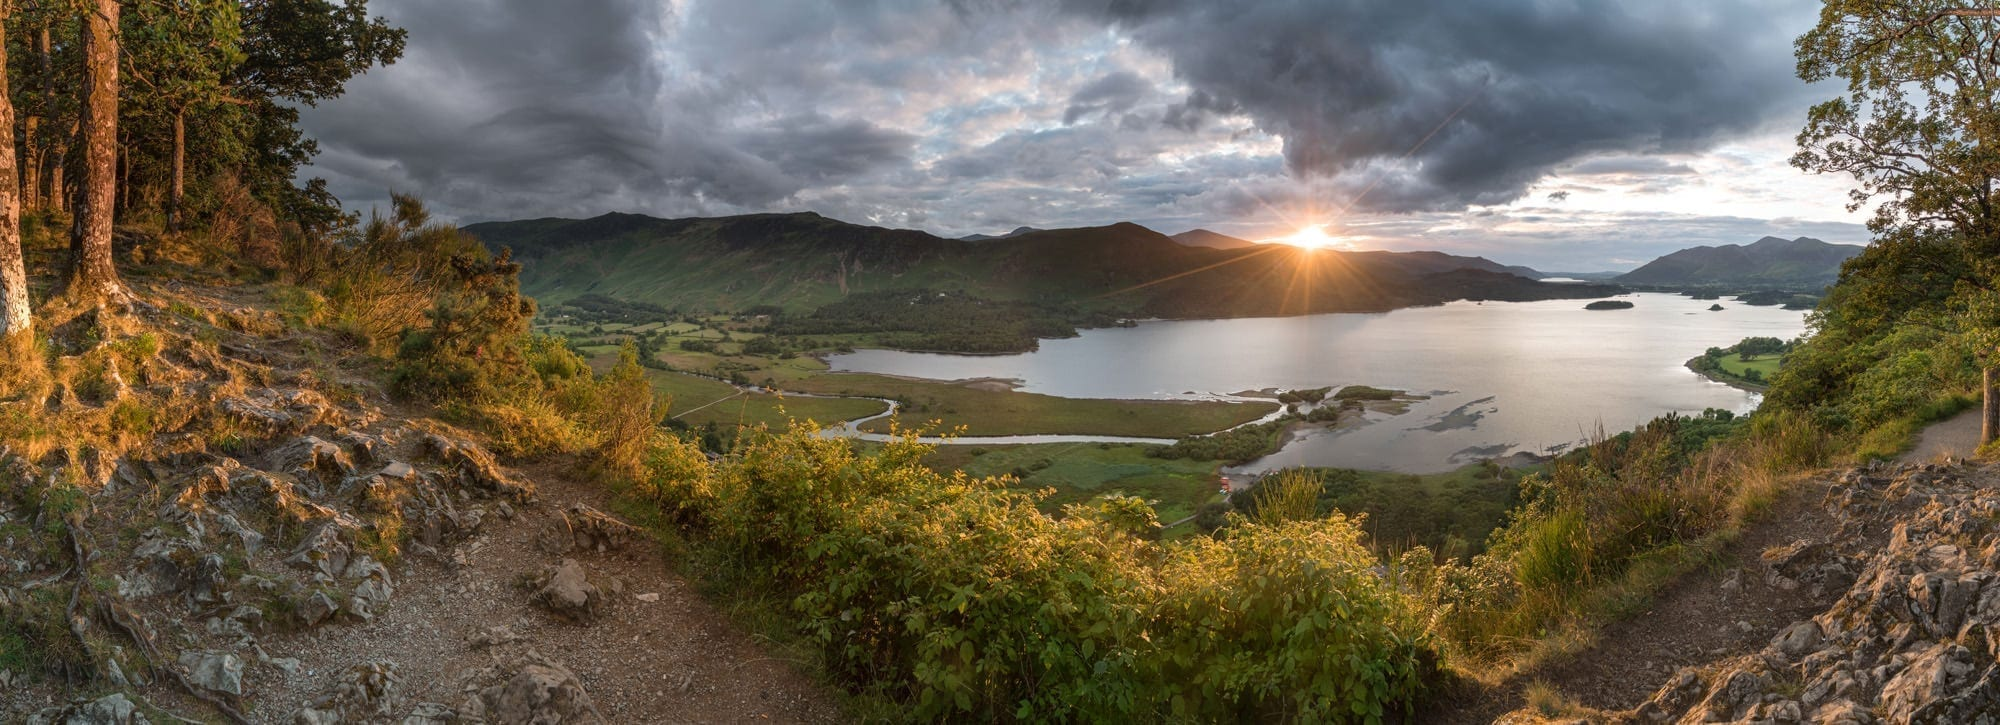 Surprise View Panoramic Sunset - Lake District Photography Workshops